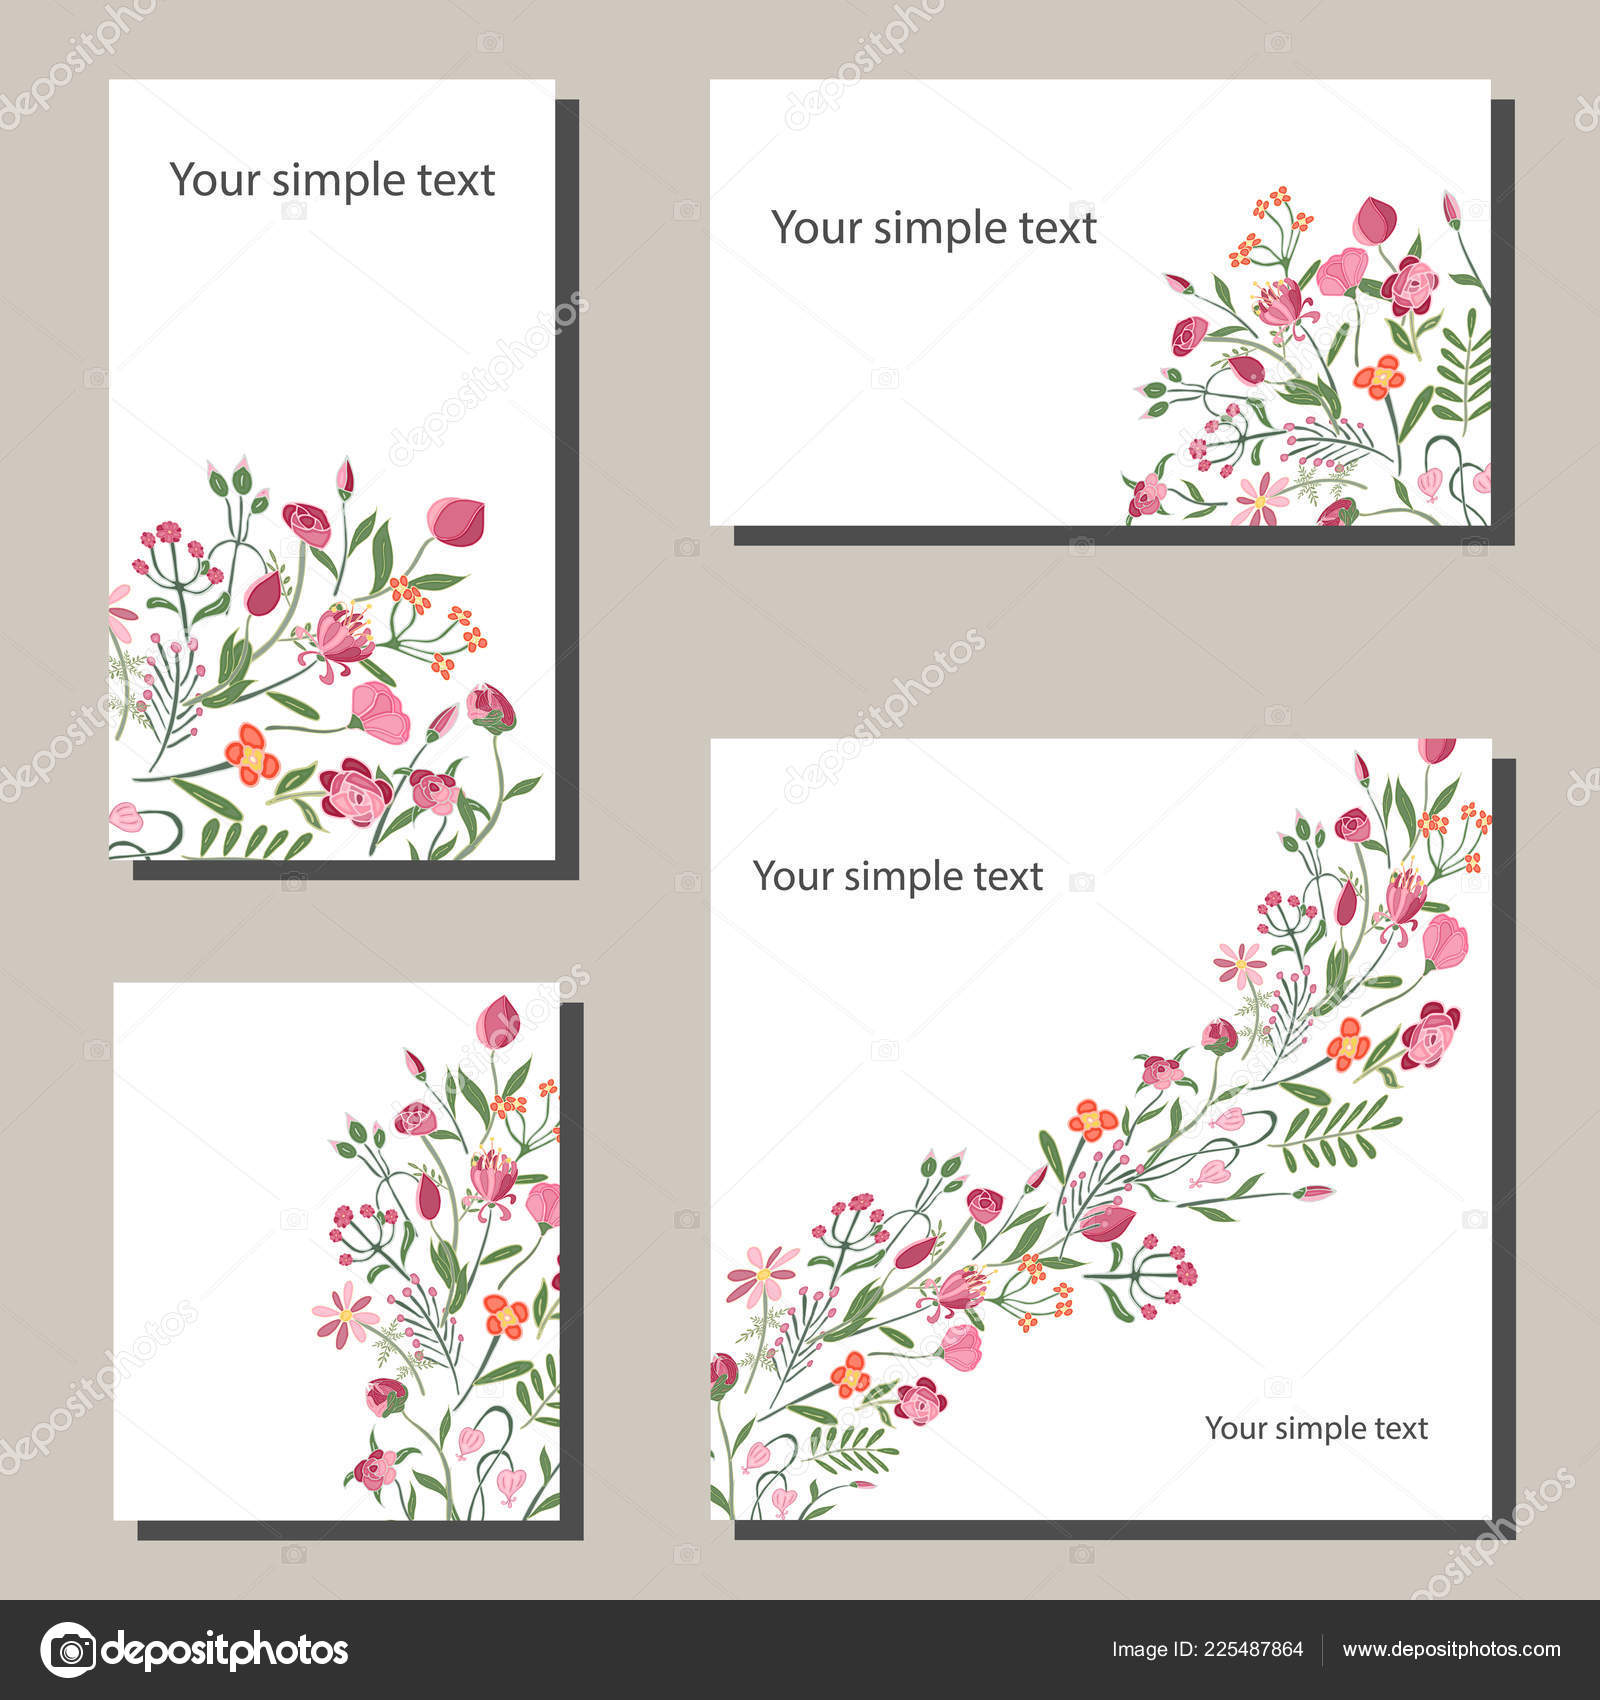 floral spring templates with flowers for romantic and easter spring